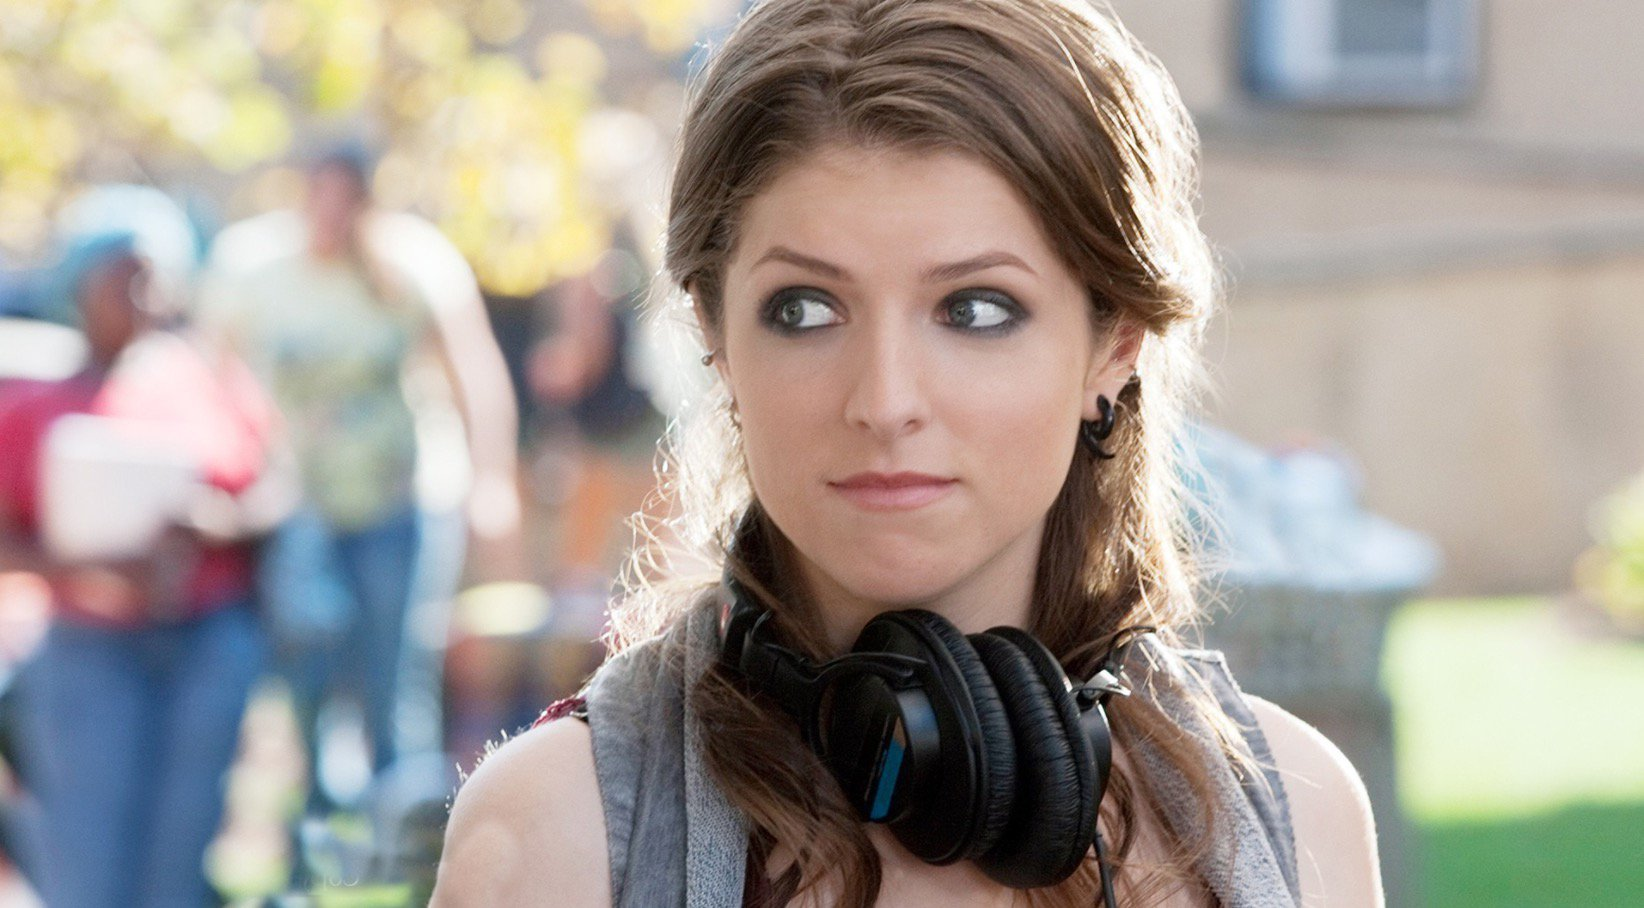 Anna Kendrick will become Santa in a new Disney movie https://t.co/MrfVApRAns https://t.co/hiEufsIY2X